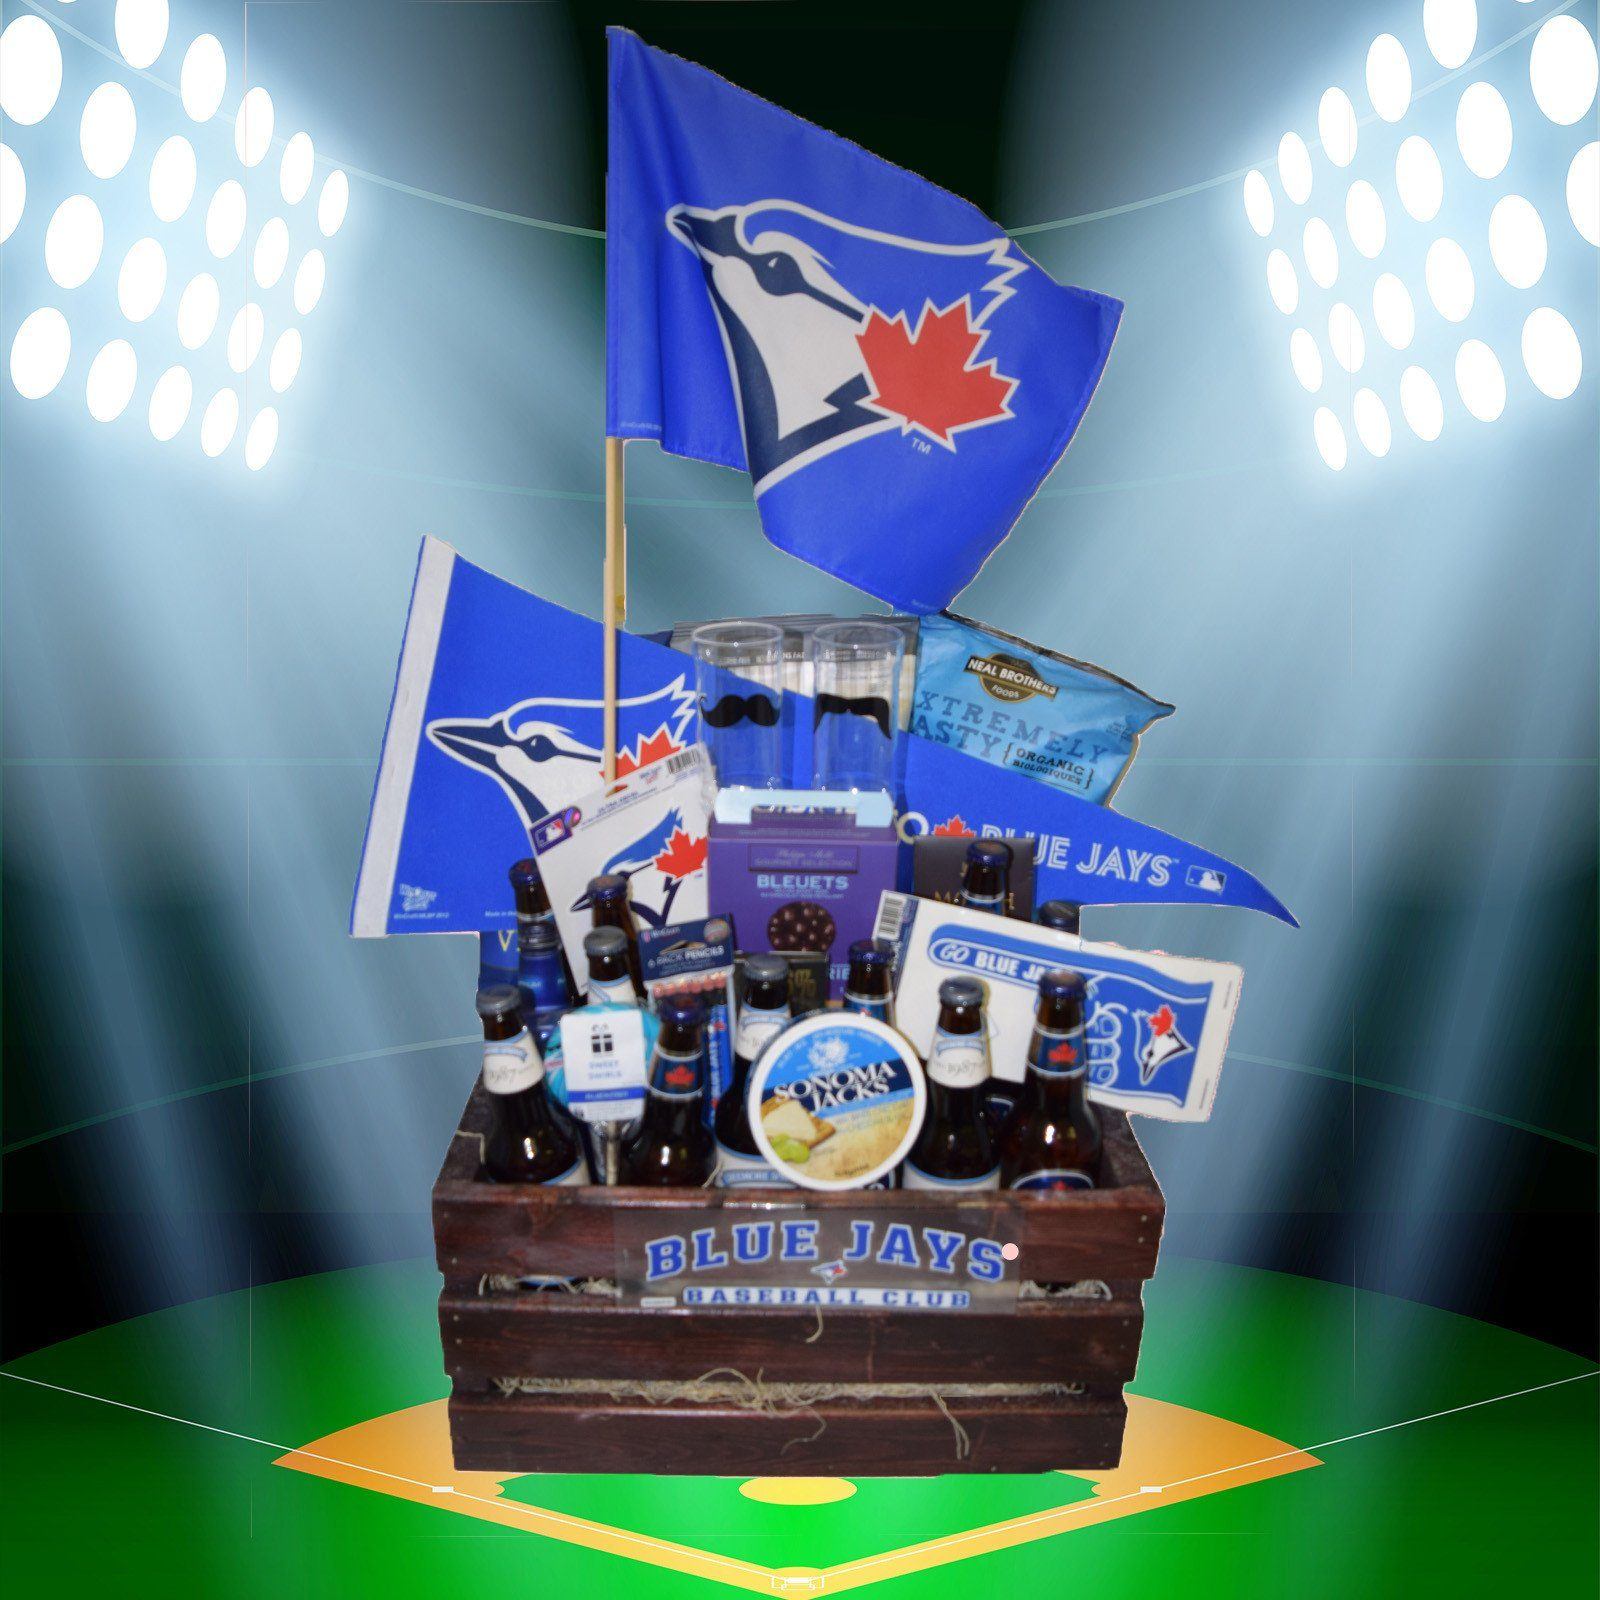 The Toronto Blue Jays Beer Crate